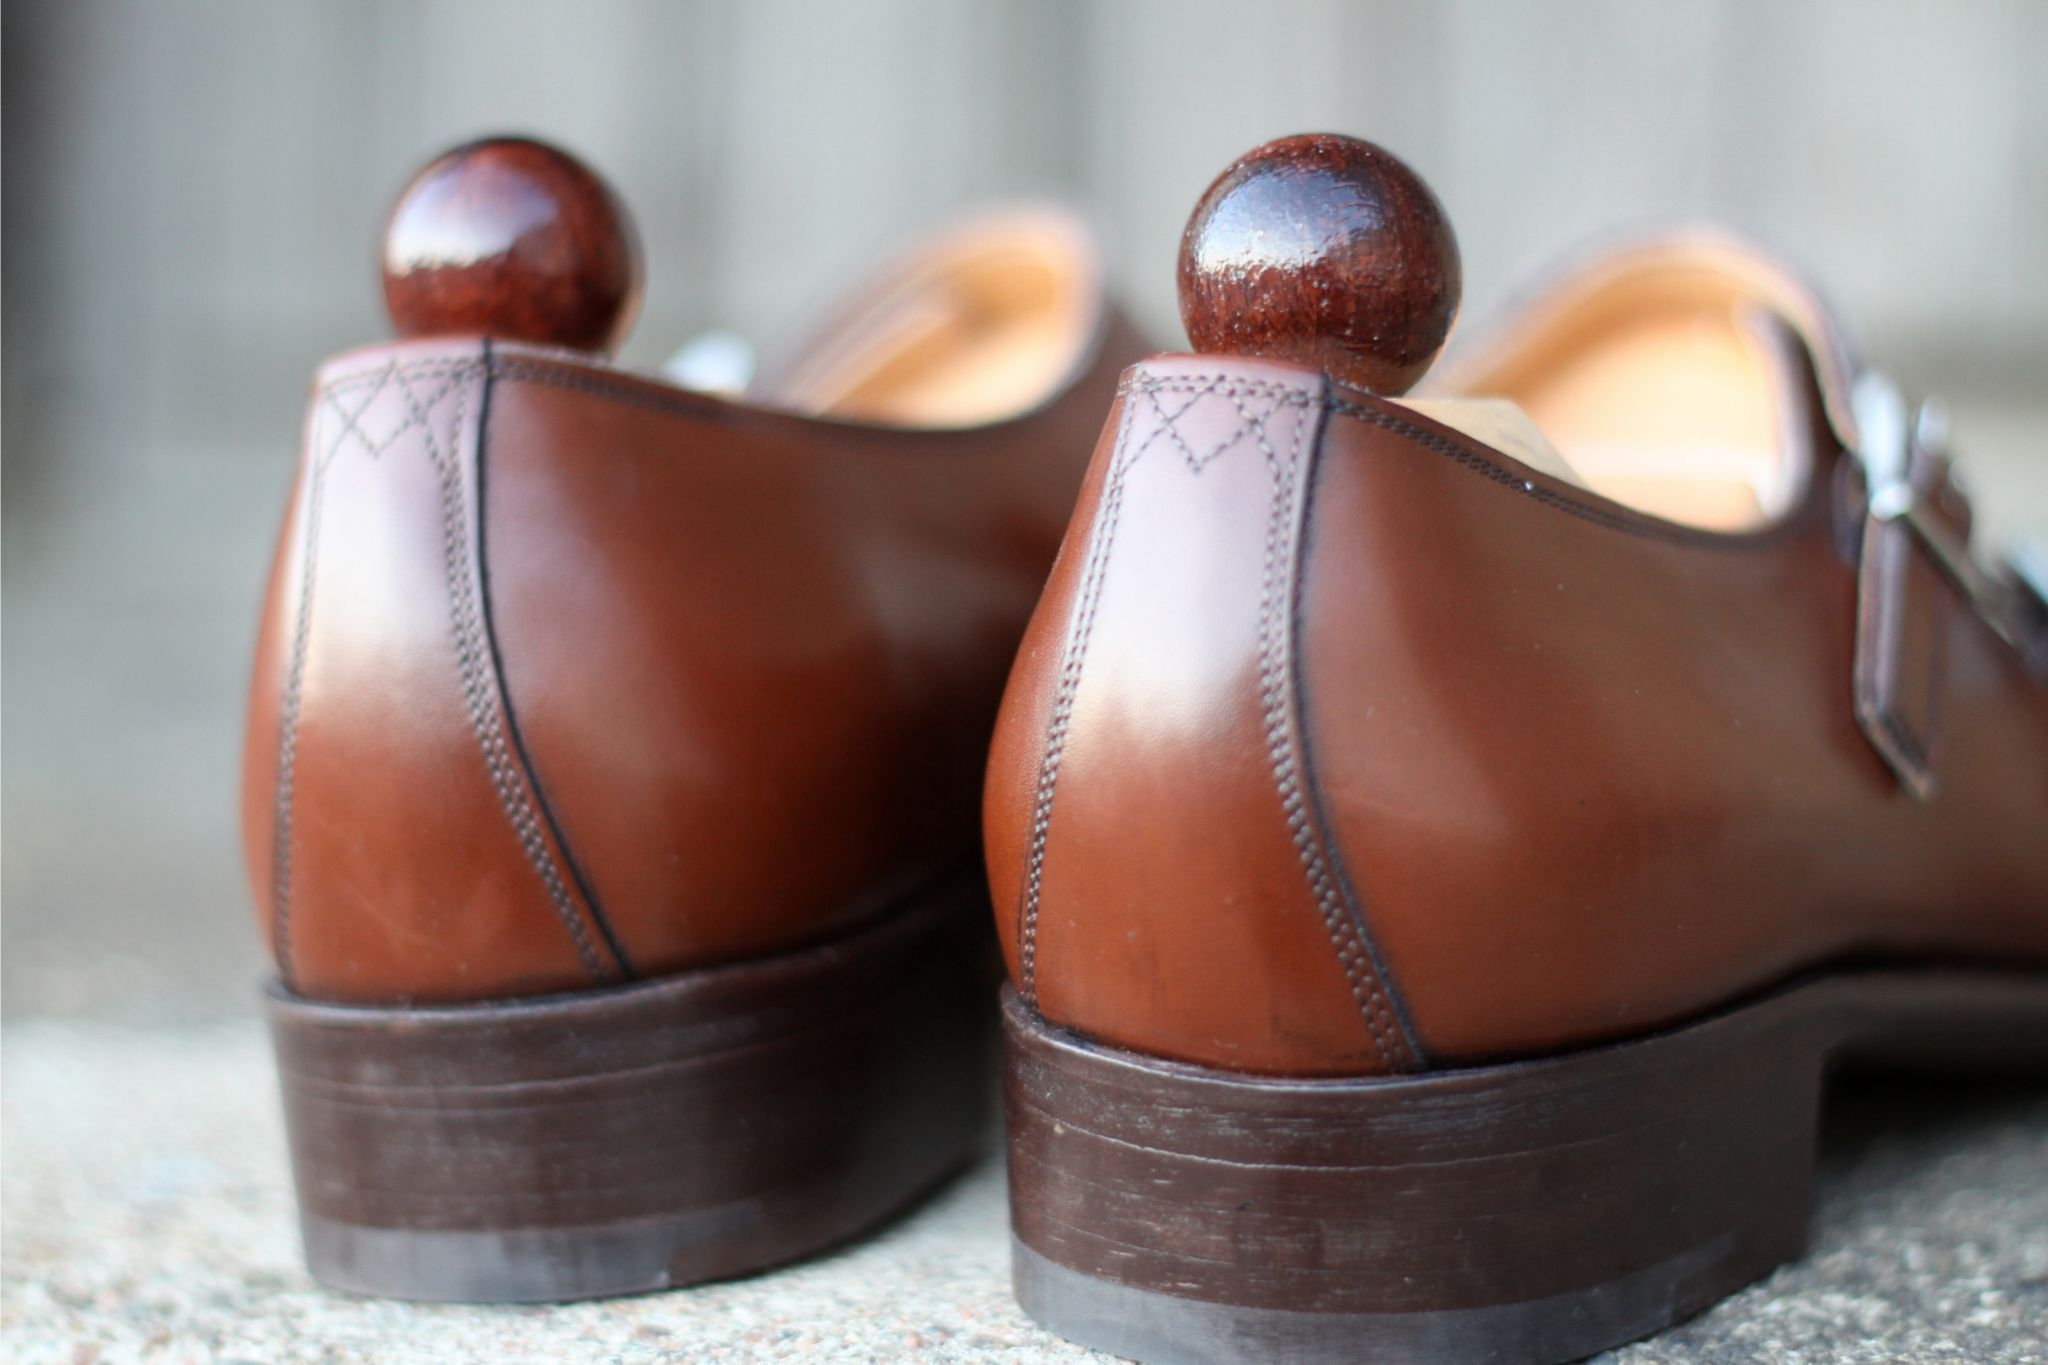 Laszlo Vass Handmade Shoes From Hungary Dress Like A